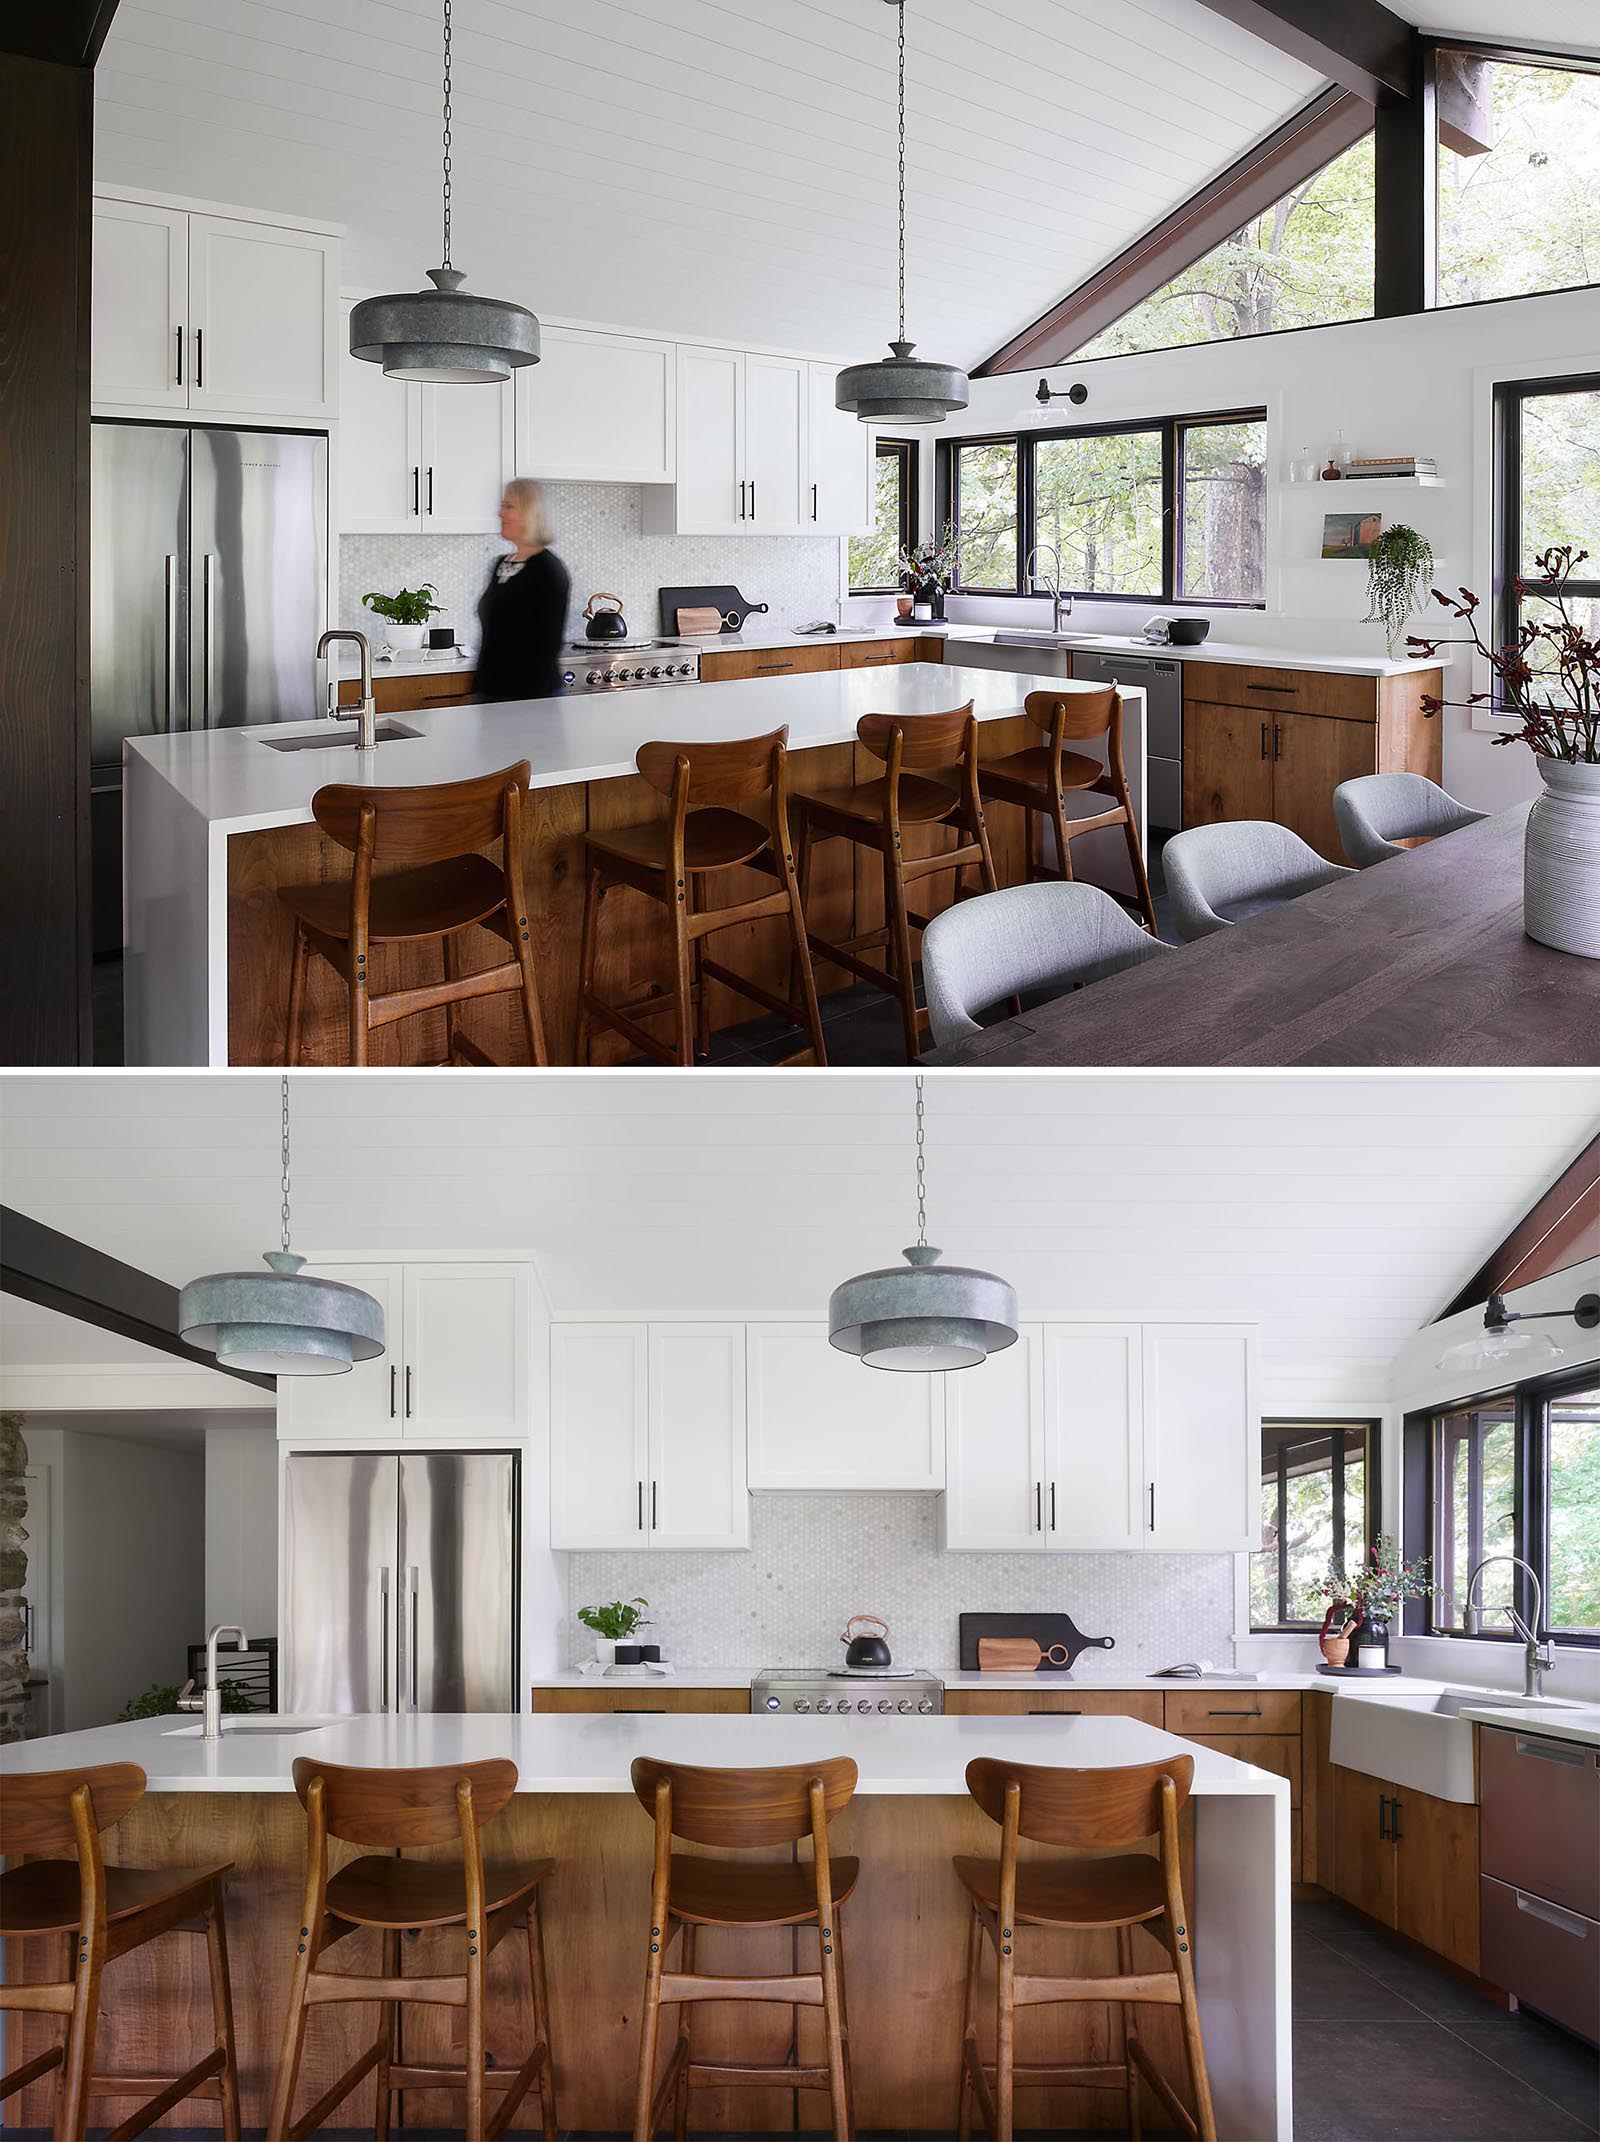 A modern kitchen with a large kitchen island provides ample countertop space, while the upper cabinets have a simple shaker style with black hardware, and the lower cabinets are wood.